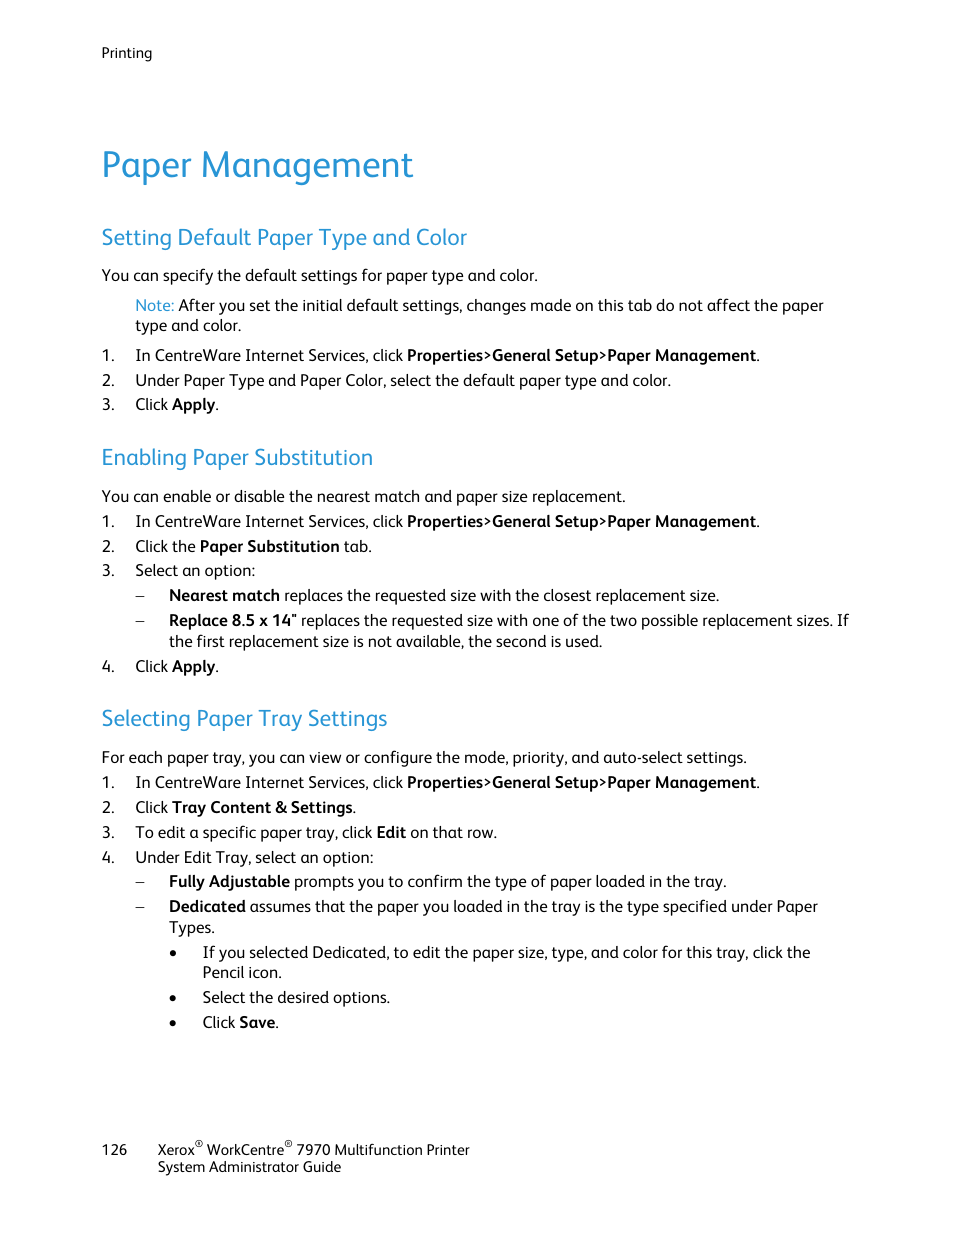 Paper management, Setting default paper type and color